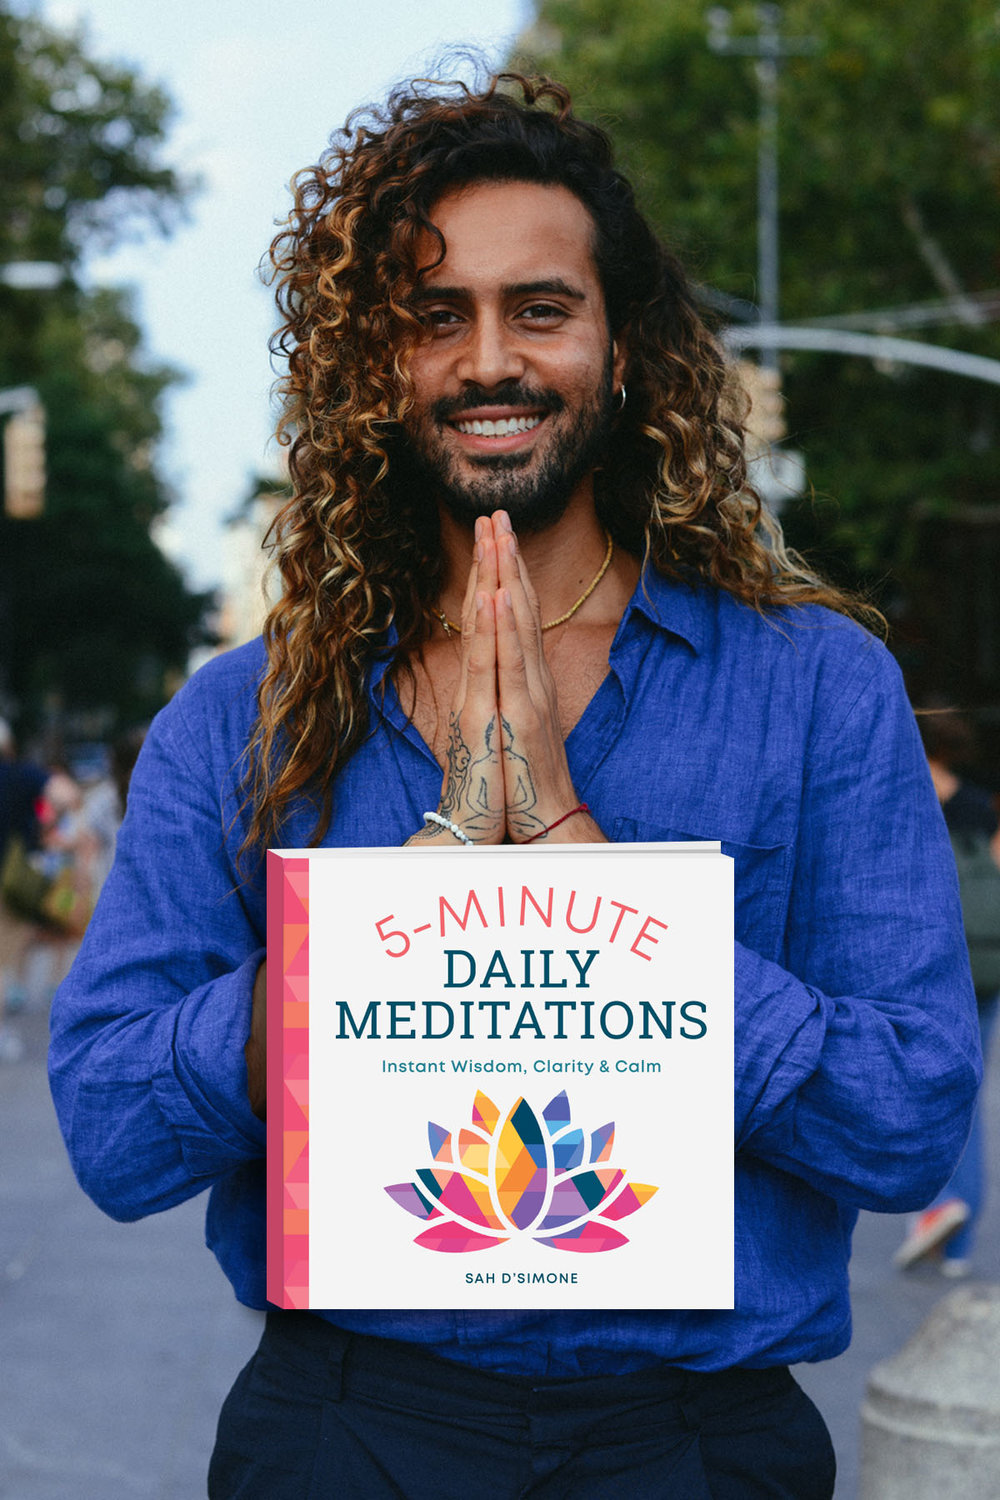 5-Minute Daily Meditations  - These short and accessible daily meditations allow you to practice mindfulness any day, anytime, and anywhere. With 365 daily meditations on everything from emotions and fears to forgiveness and love, 5-Minute Daily Meditations is a go-to guide for mindful living when life gets busy.Order Now ➝